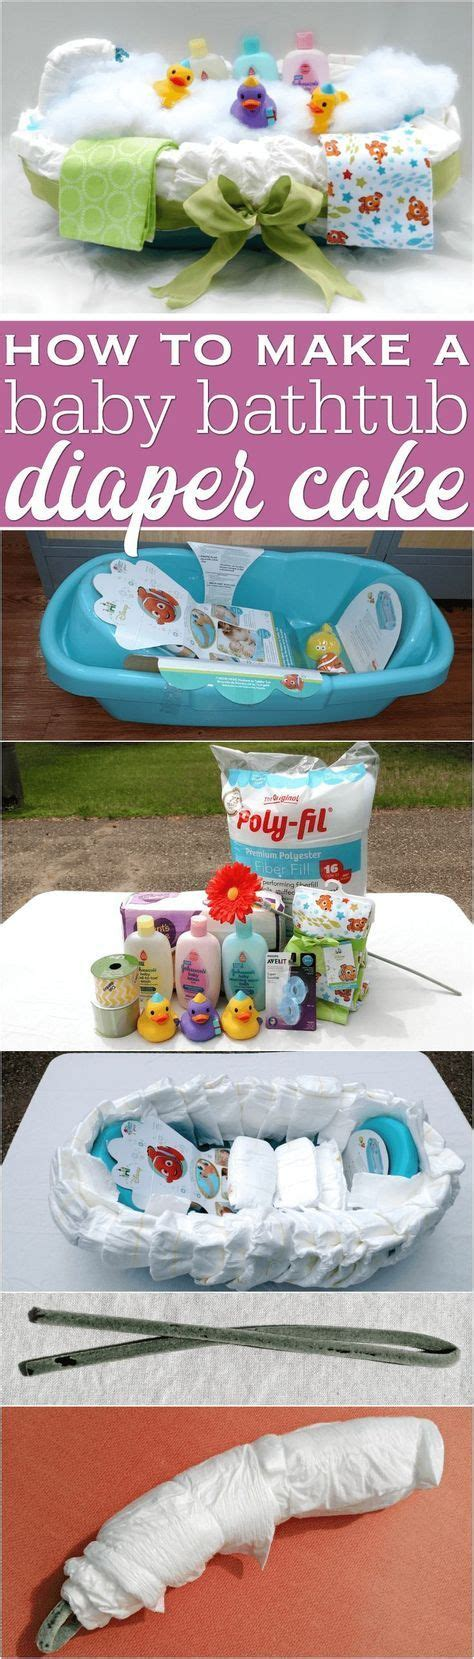 how to make a bathtub diaper cake 17 best ideas about diaper cake instructions on pinterest